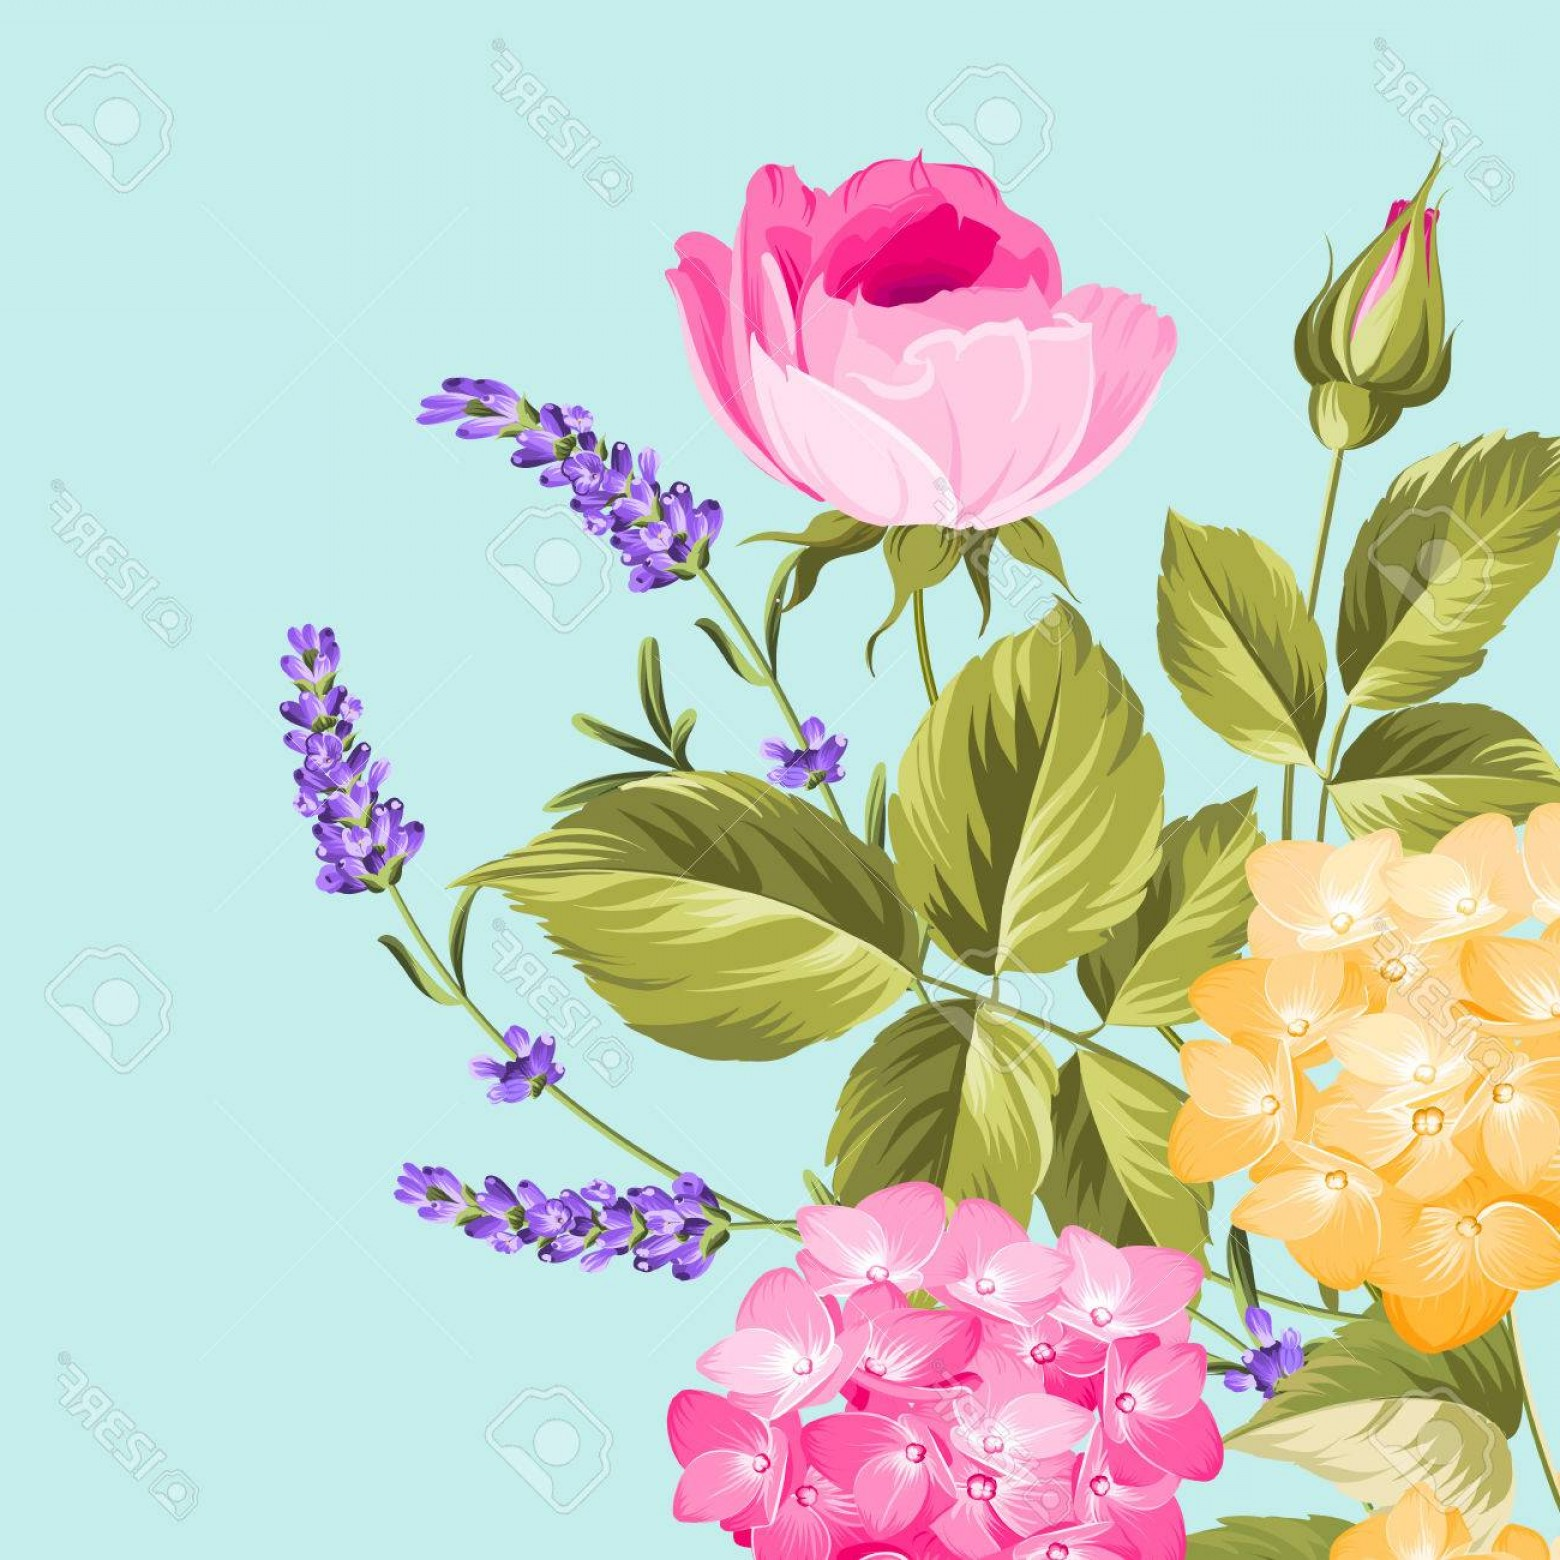 Vector Mop Flower: Photostock Vector Purple Flower Hydrangea On Blue Background Mop Head Hydrangea Flower Isolated Against Blue Lavender